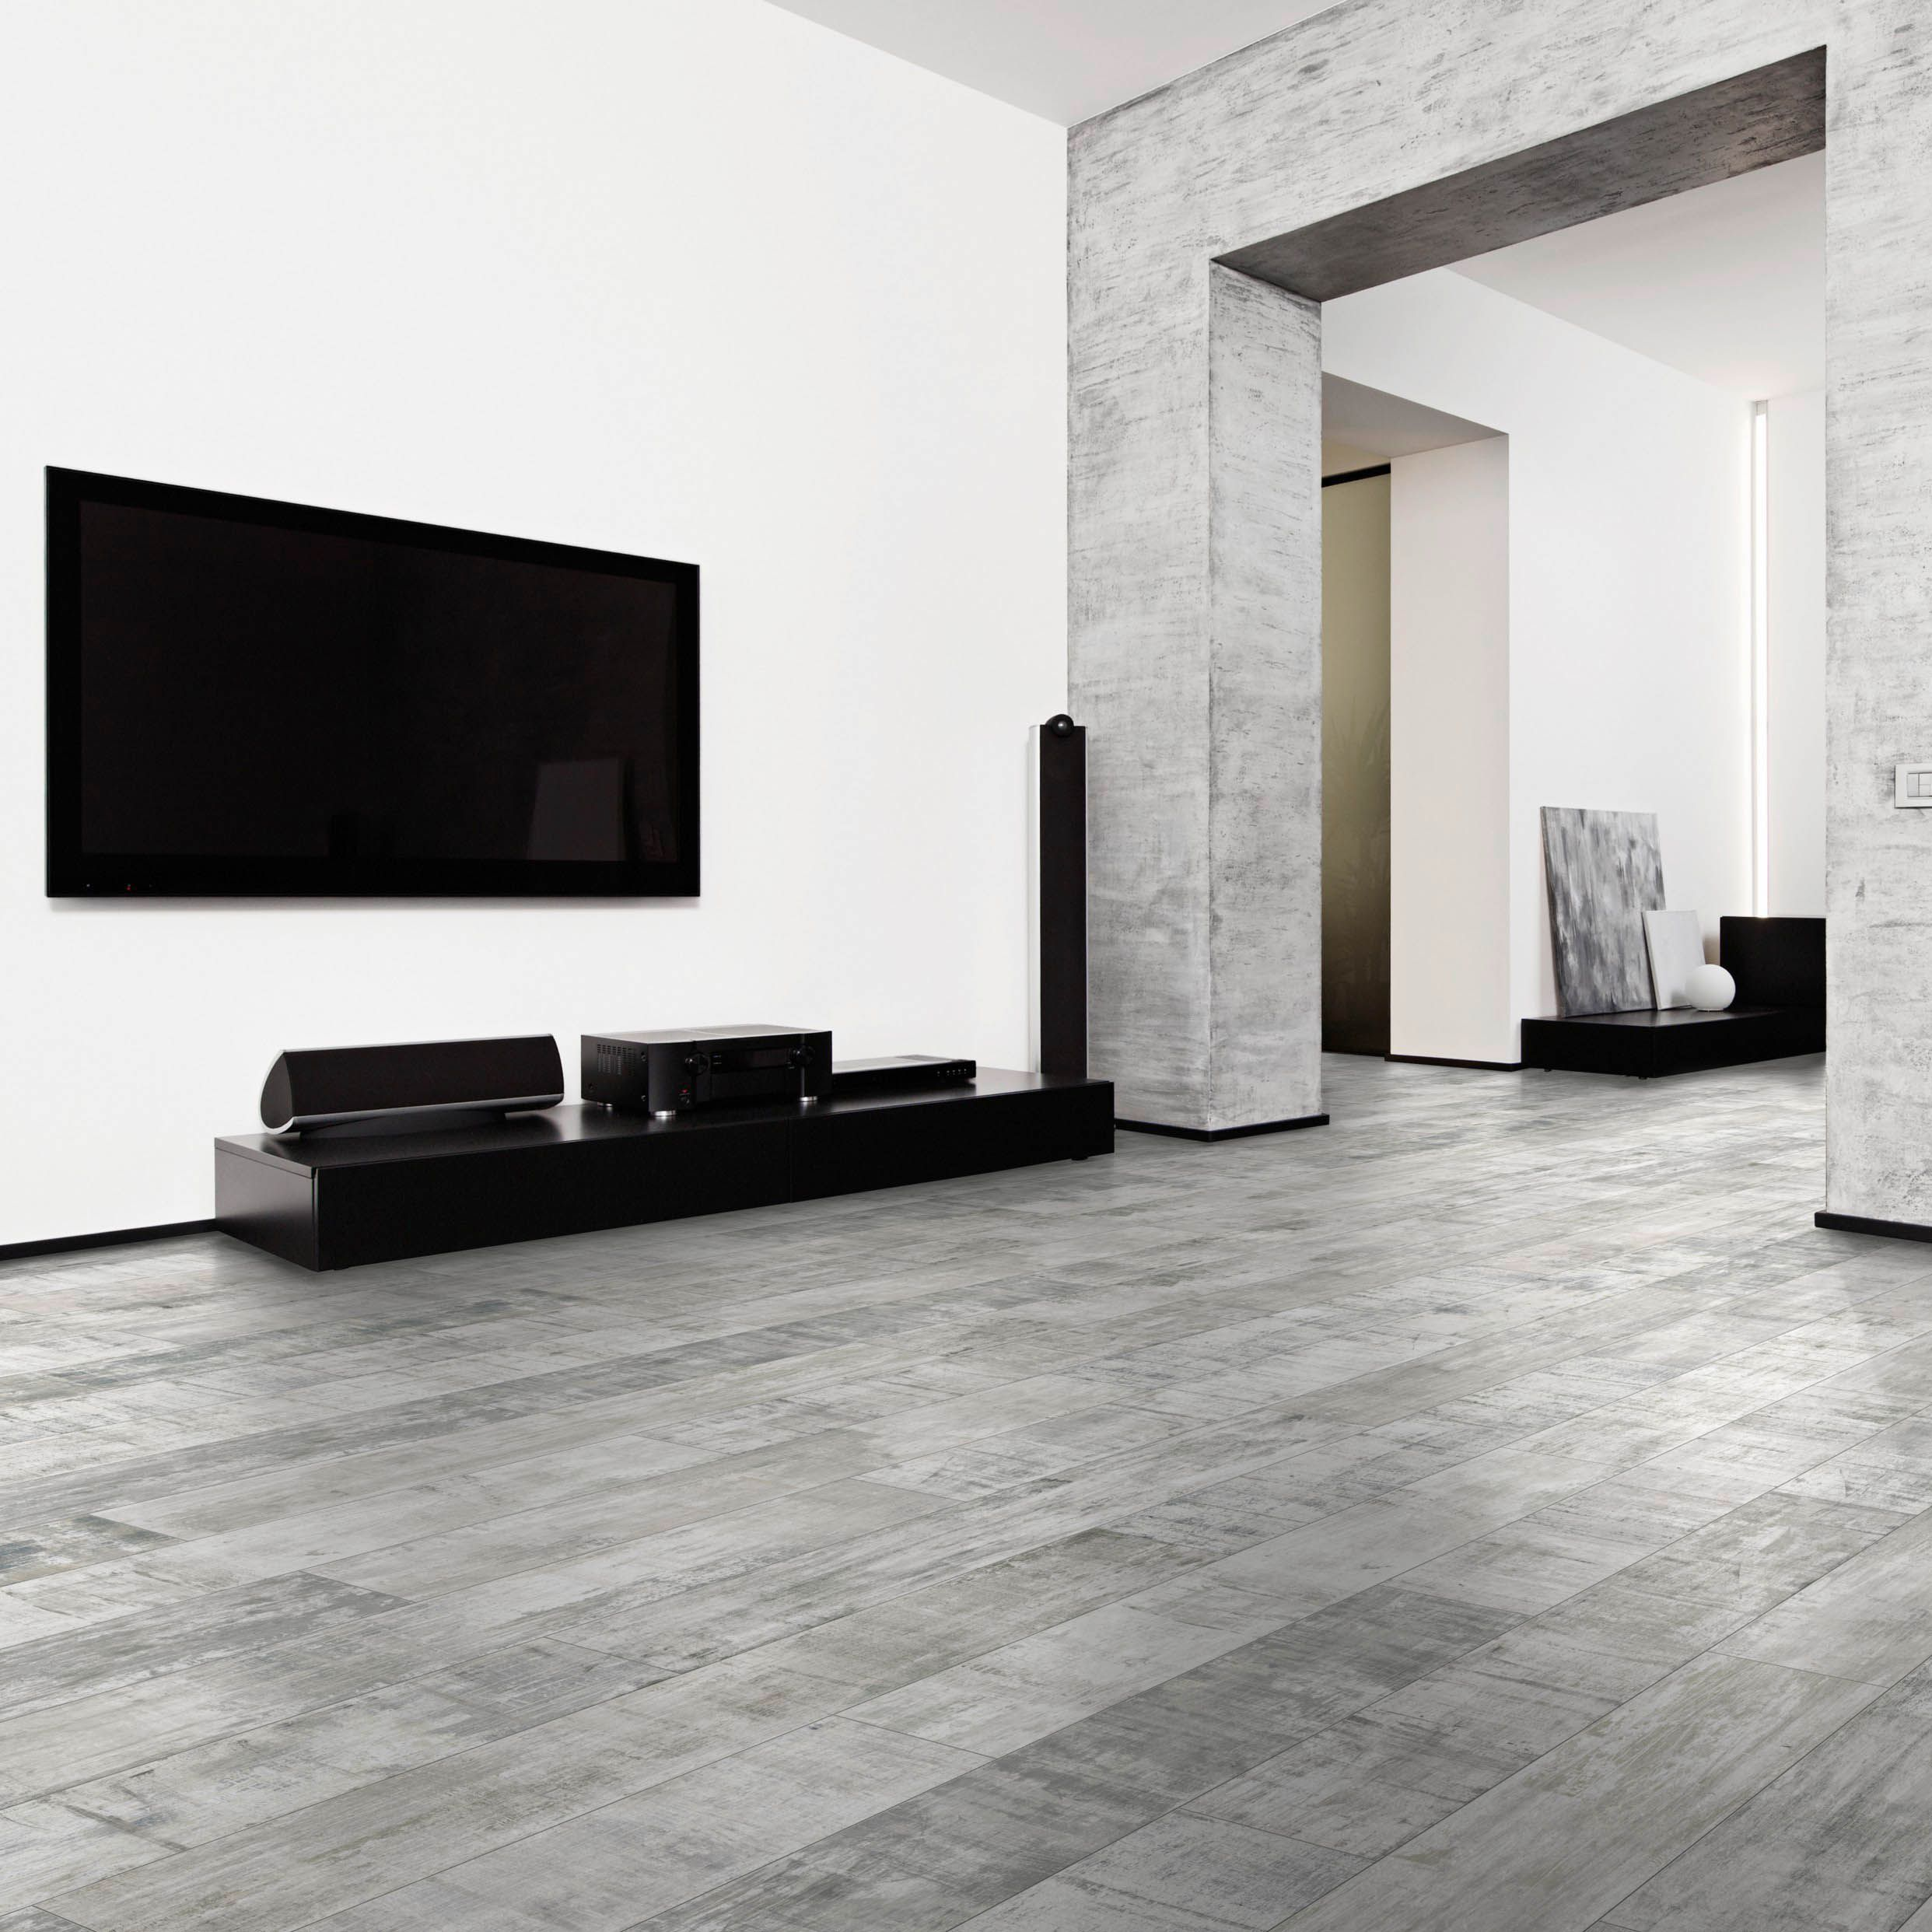 Belcanto Malibu Pine Effect Laminate Flooring 1.99 M² Pack Part 76